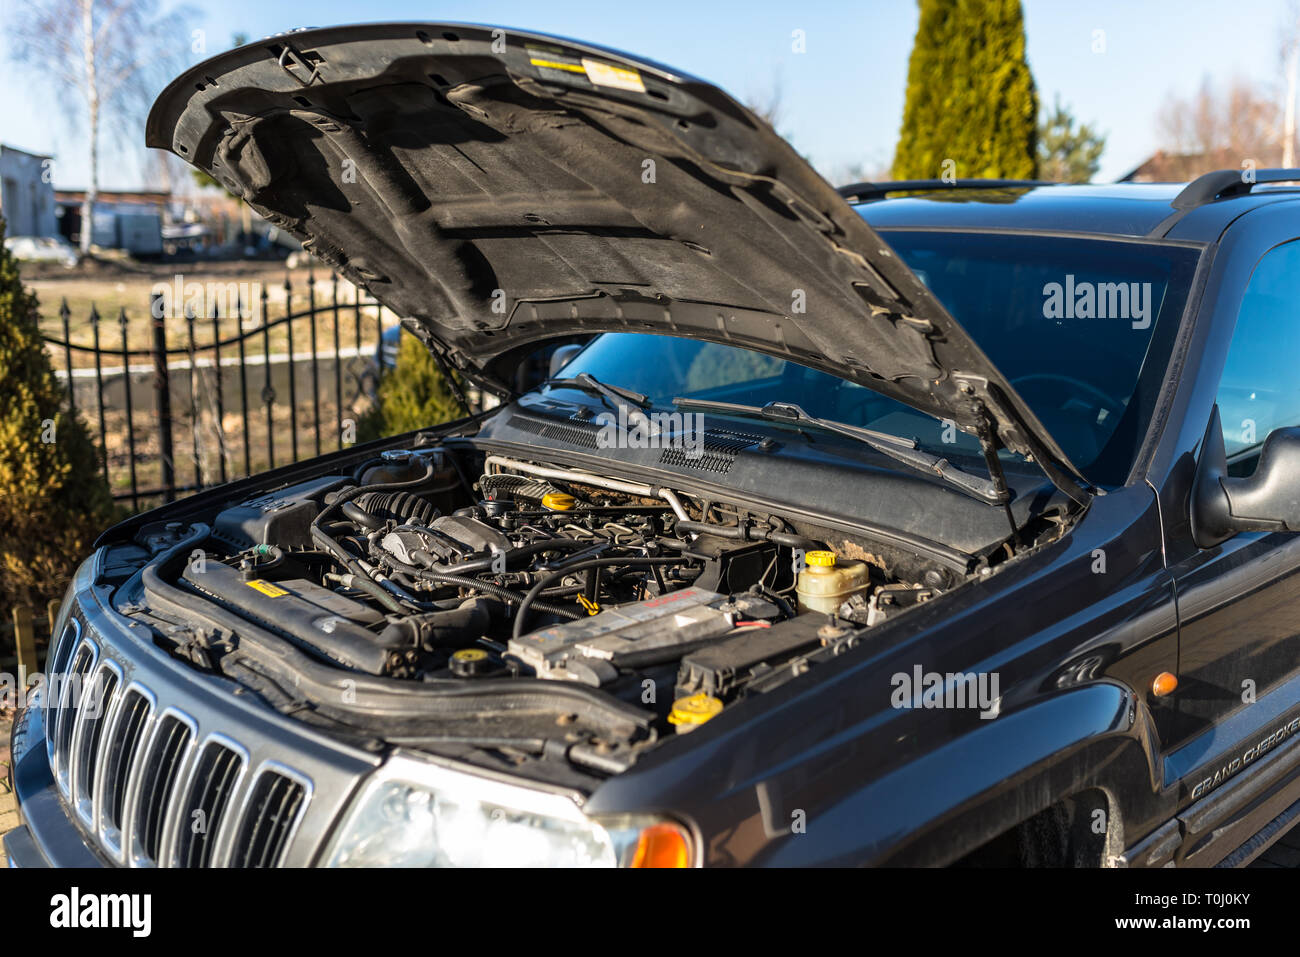 Torun, Poland - February 16, 2019. The engine compartment of the Jeep Grand Cherokee WJ produced in 2002 with a diesel engine with an automatic transm - Stock Image